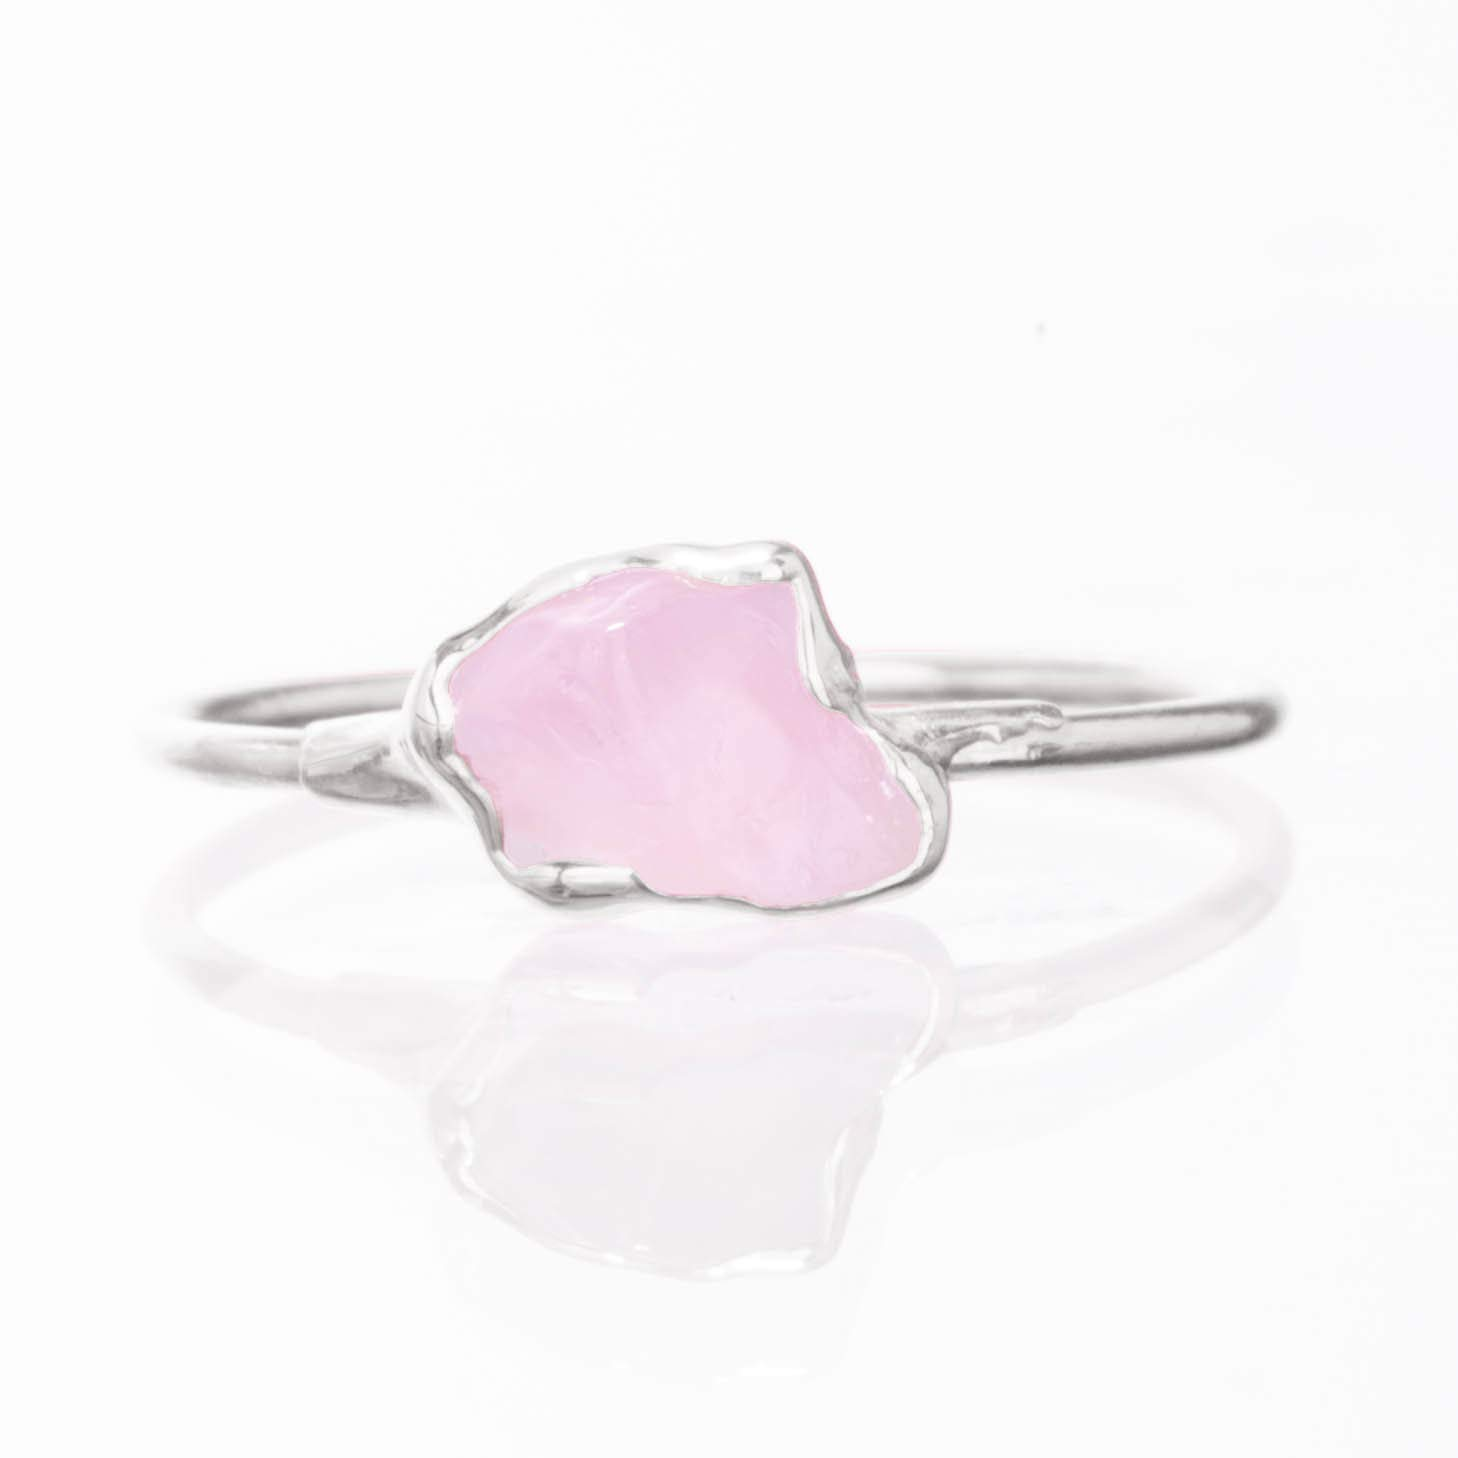 Size 6 Sterling Silver January Birthstone Dainty Raw Rose Quartz Ring